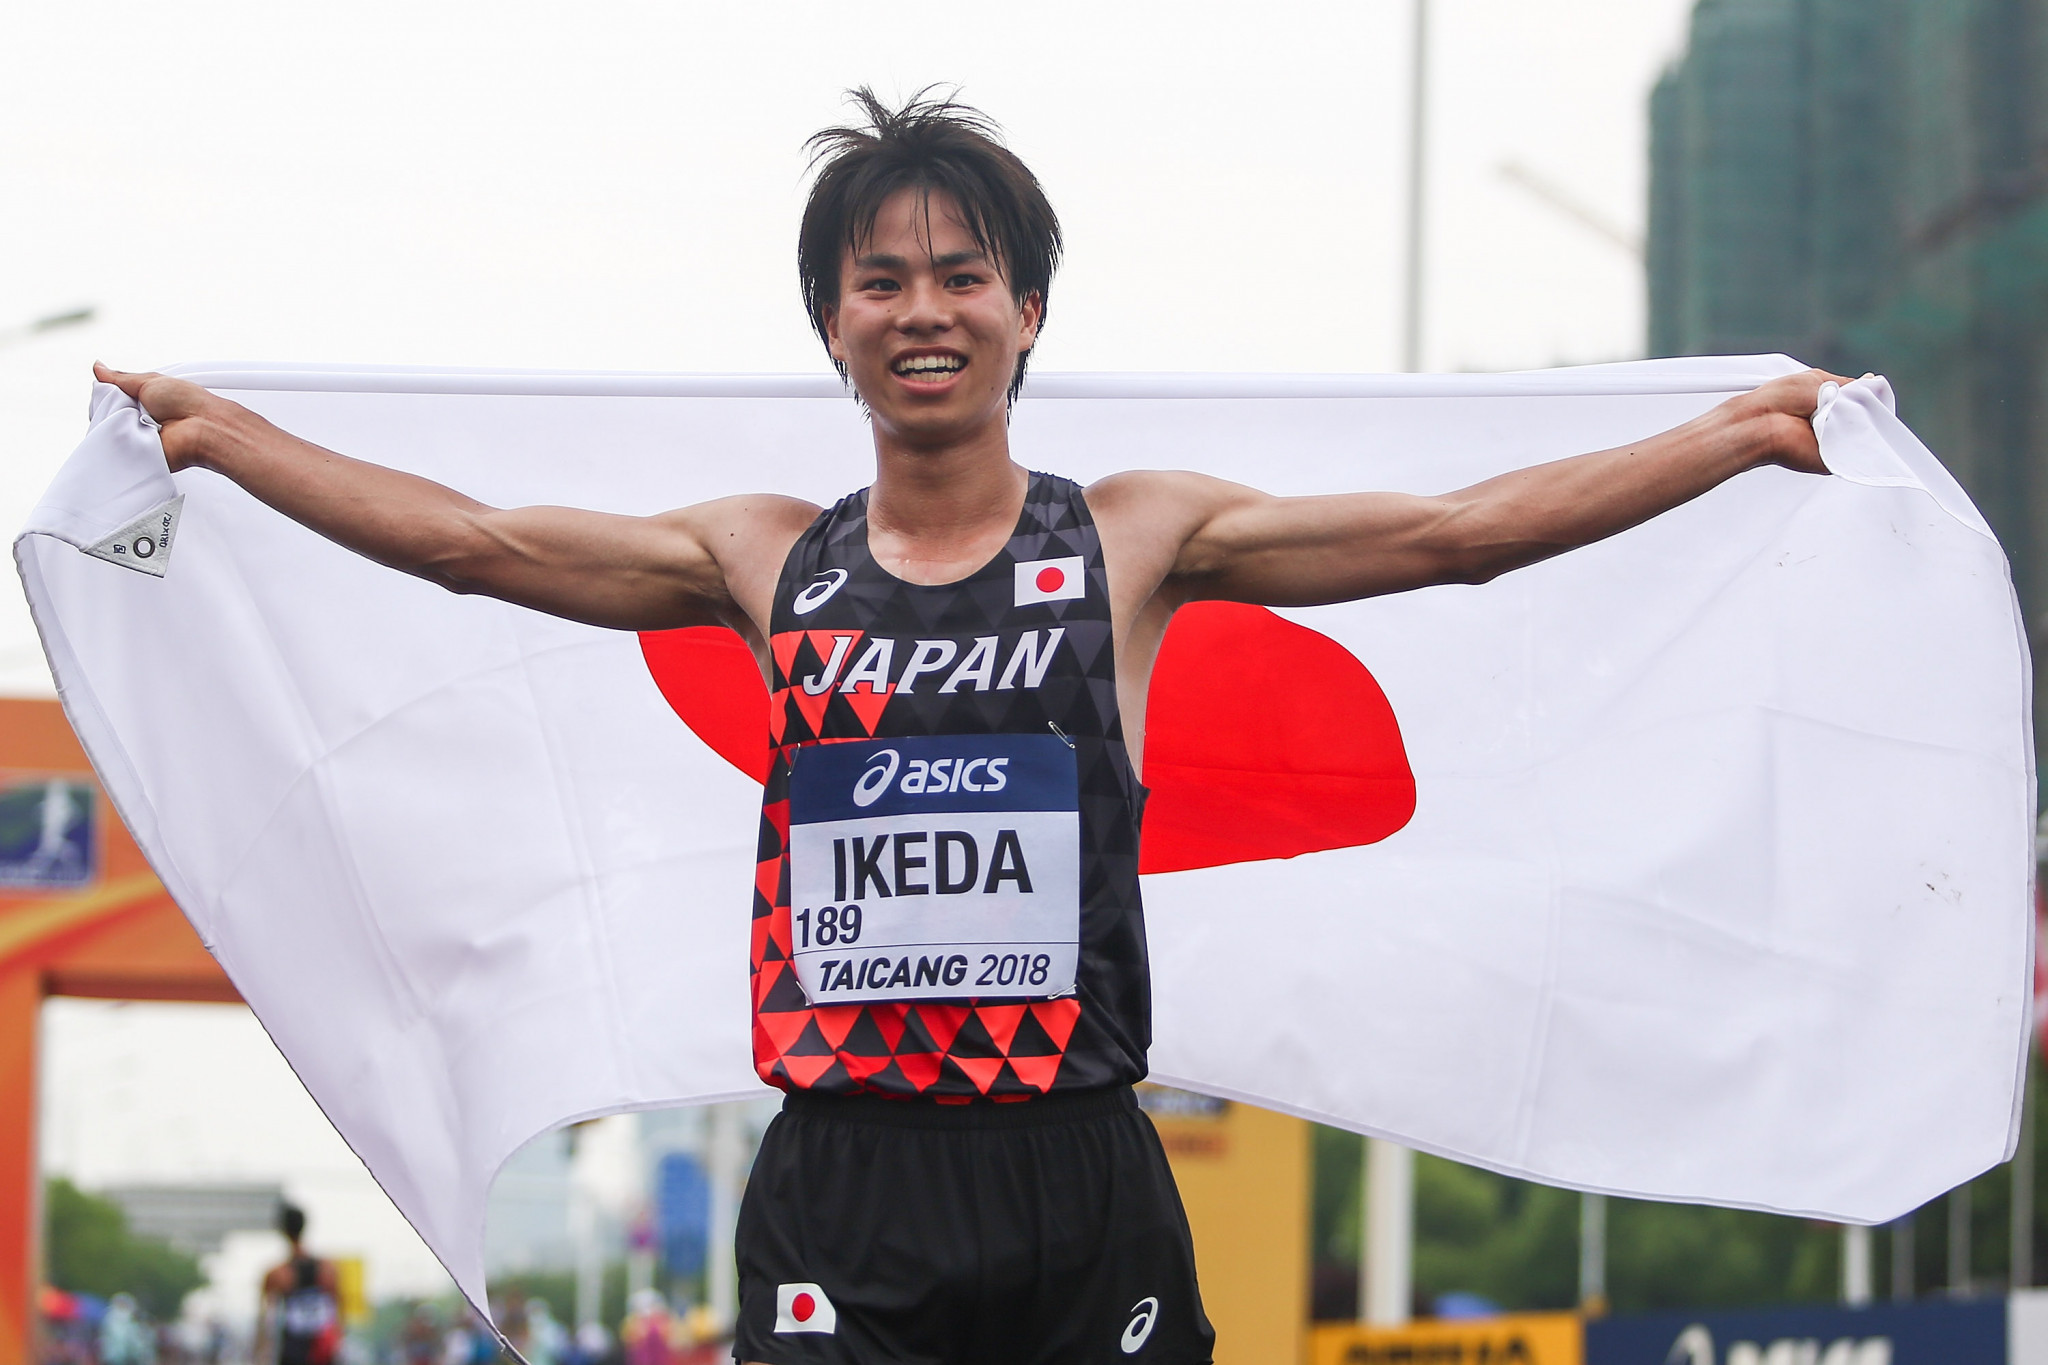 Ikeda claims men's 20km title at IAAF World Race Walking Team Championships